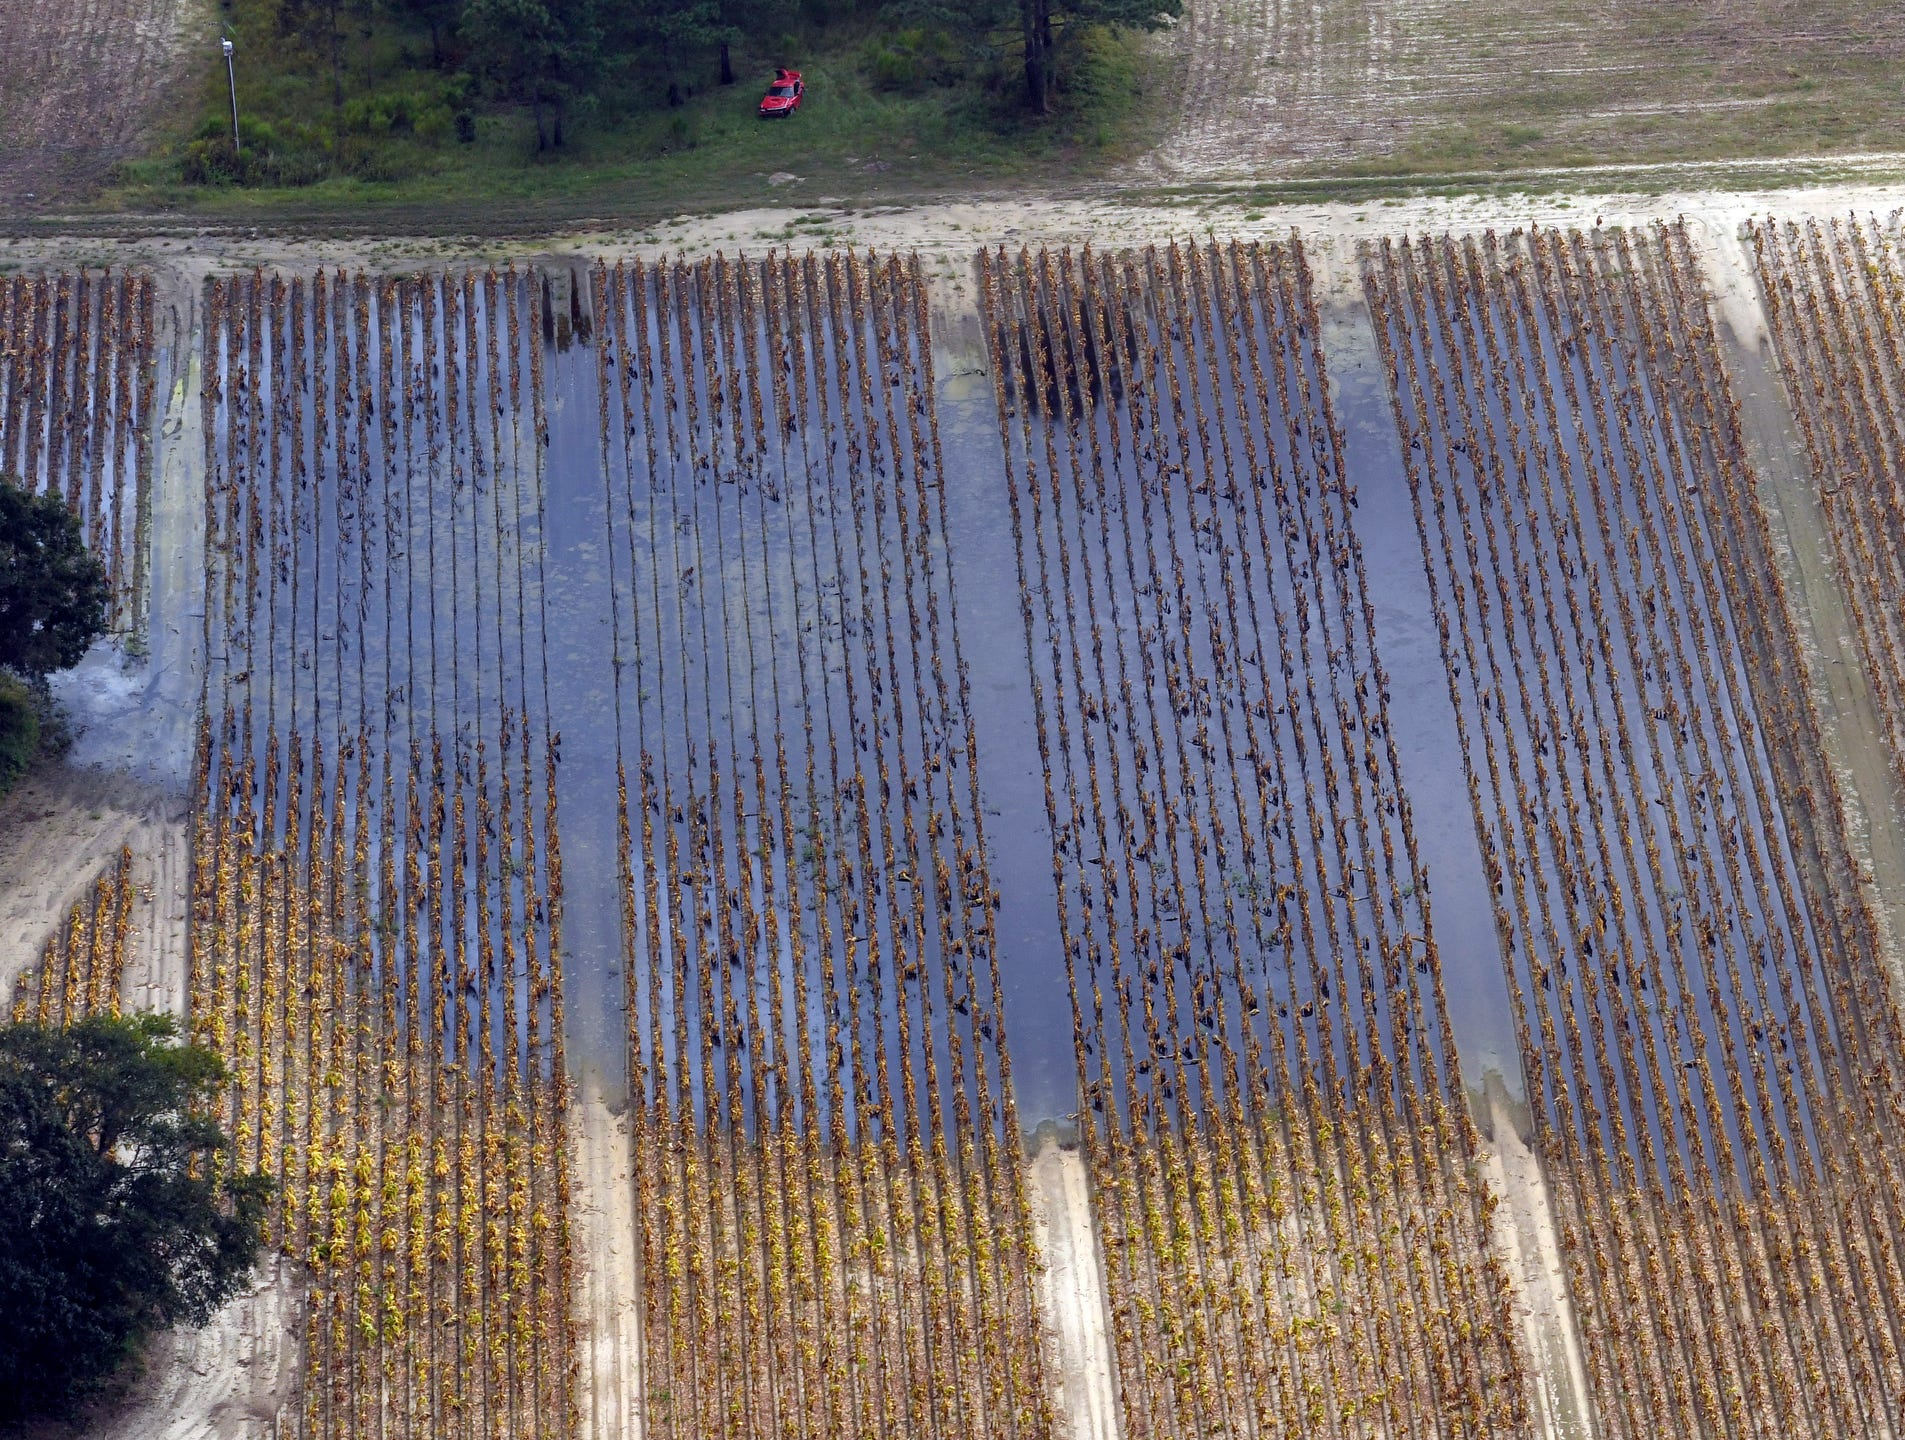 A portion of a tobacco field near Faison, N.C. flooded by water from Hurricane Florence is seen from a N.C. National Guard Blackhawk helicopter as Governor Roy Cooper tours agricultural areas of eastern N.C. hit hard by the storm.